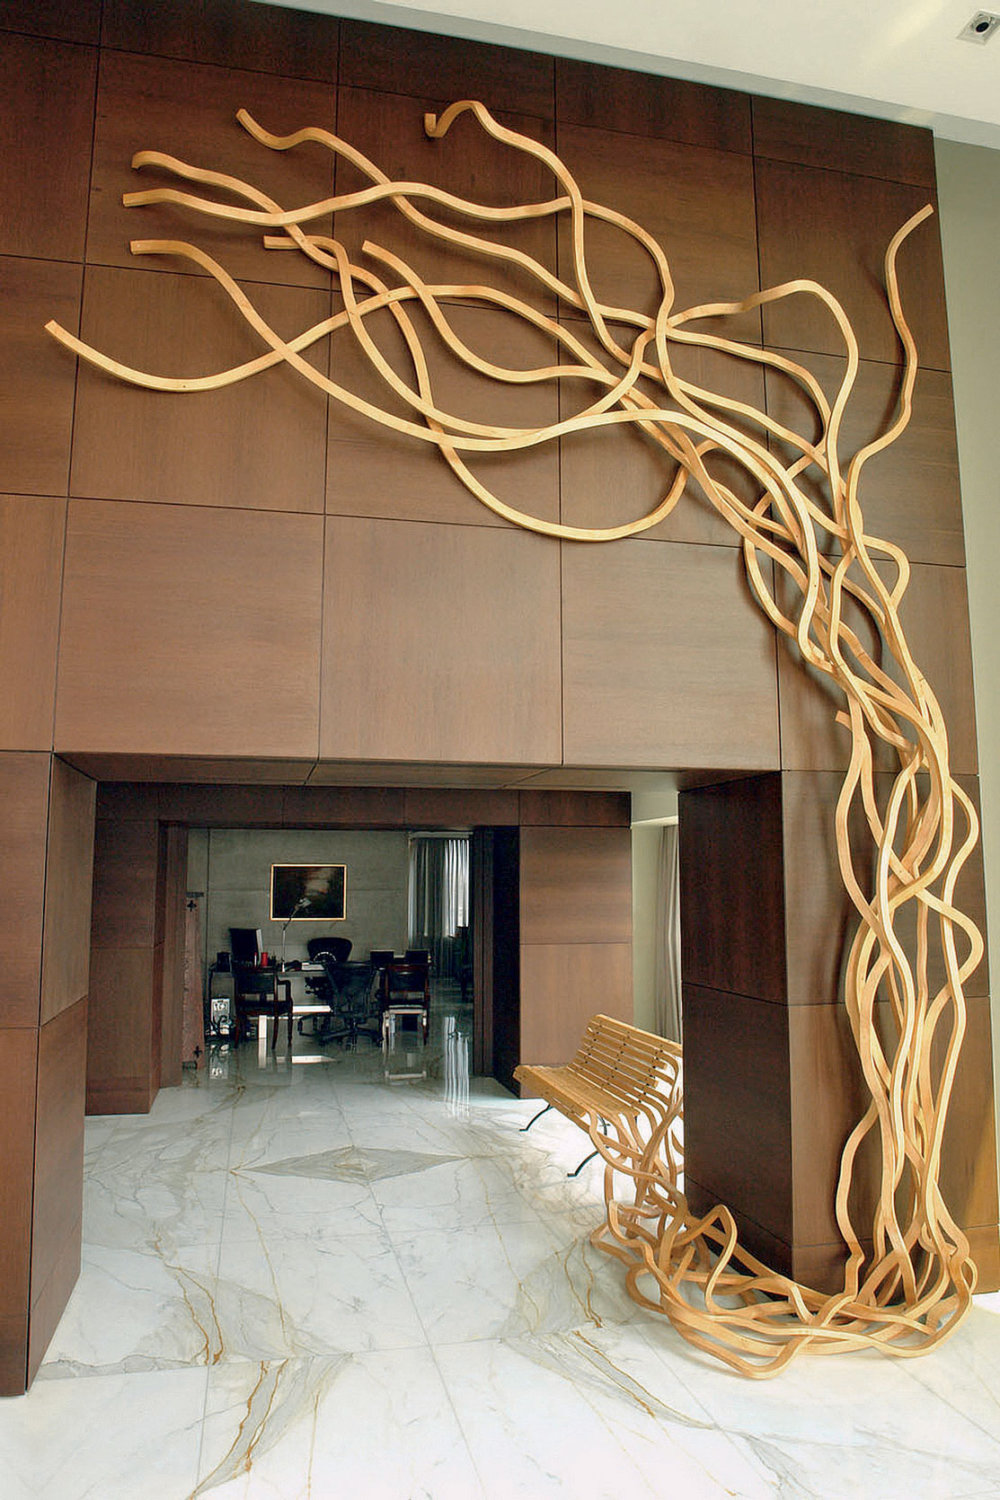 Sculptural Twisted Spaghetti Like Benches By Pablo Reinoso 4